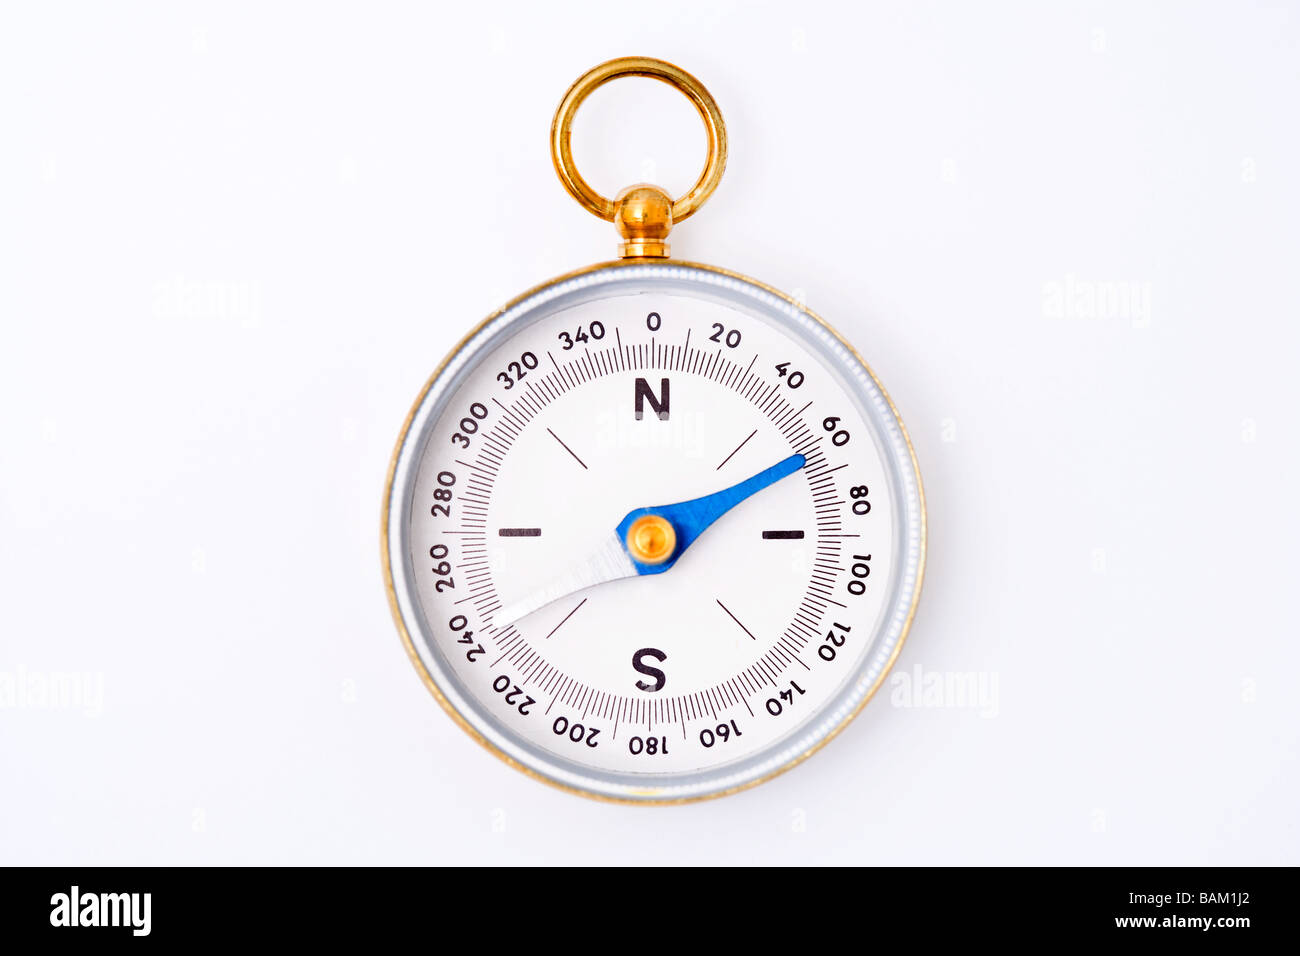 A compass - Stock Image